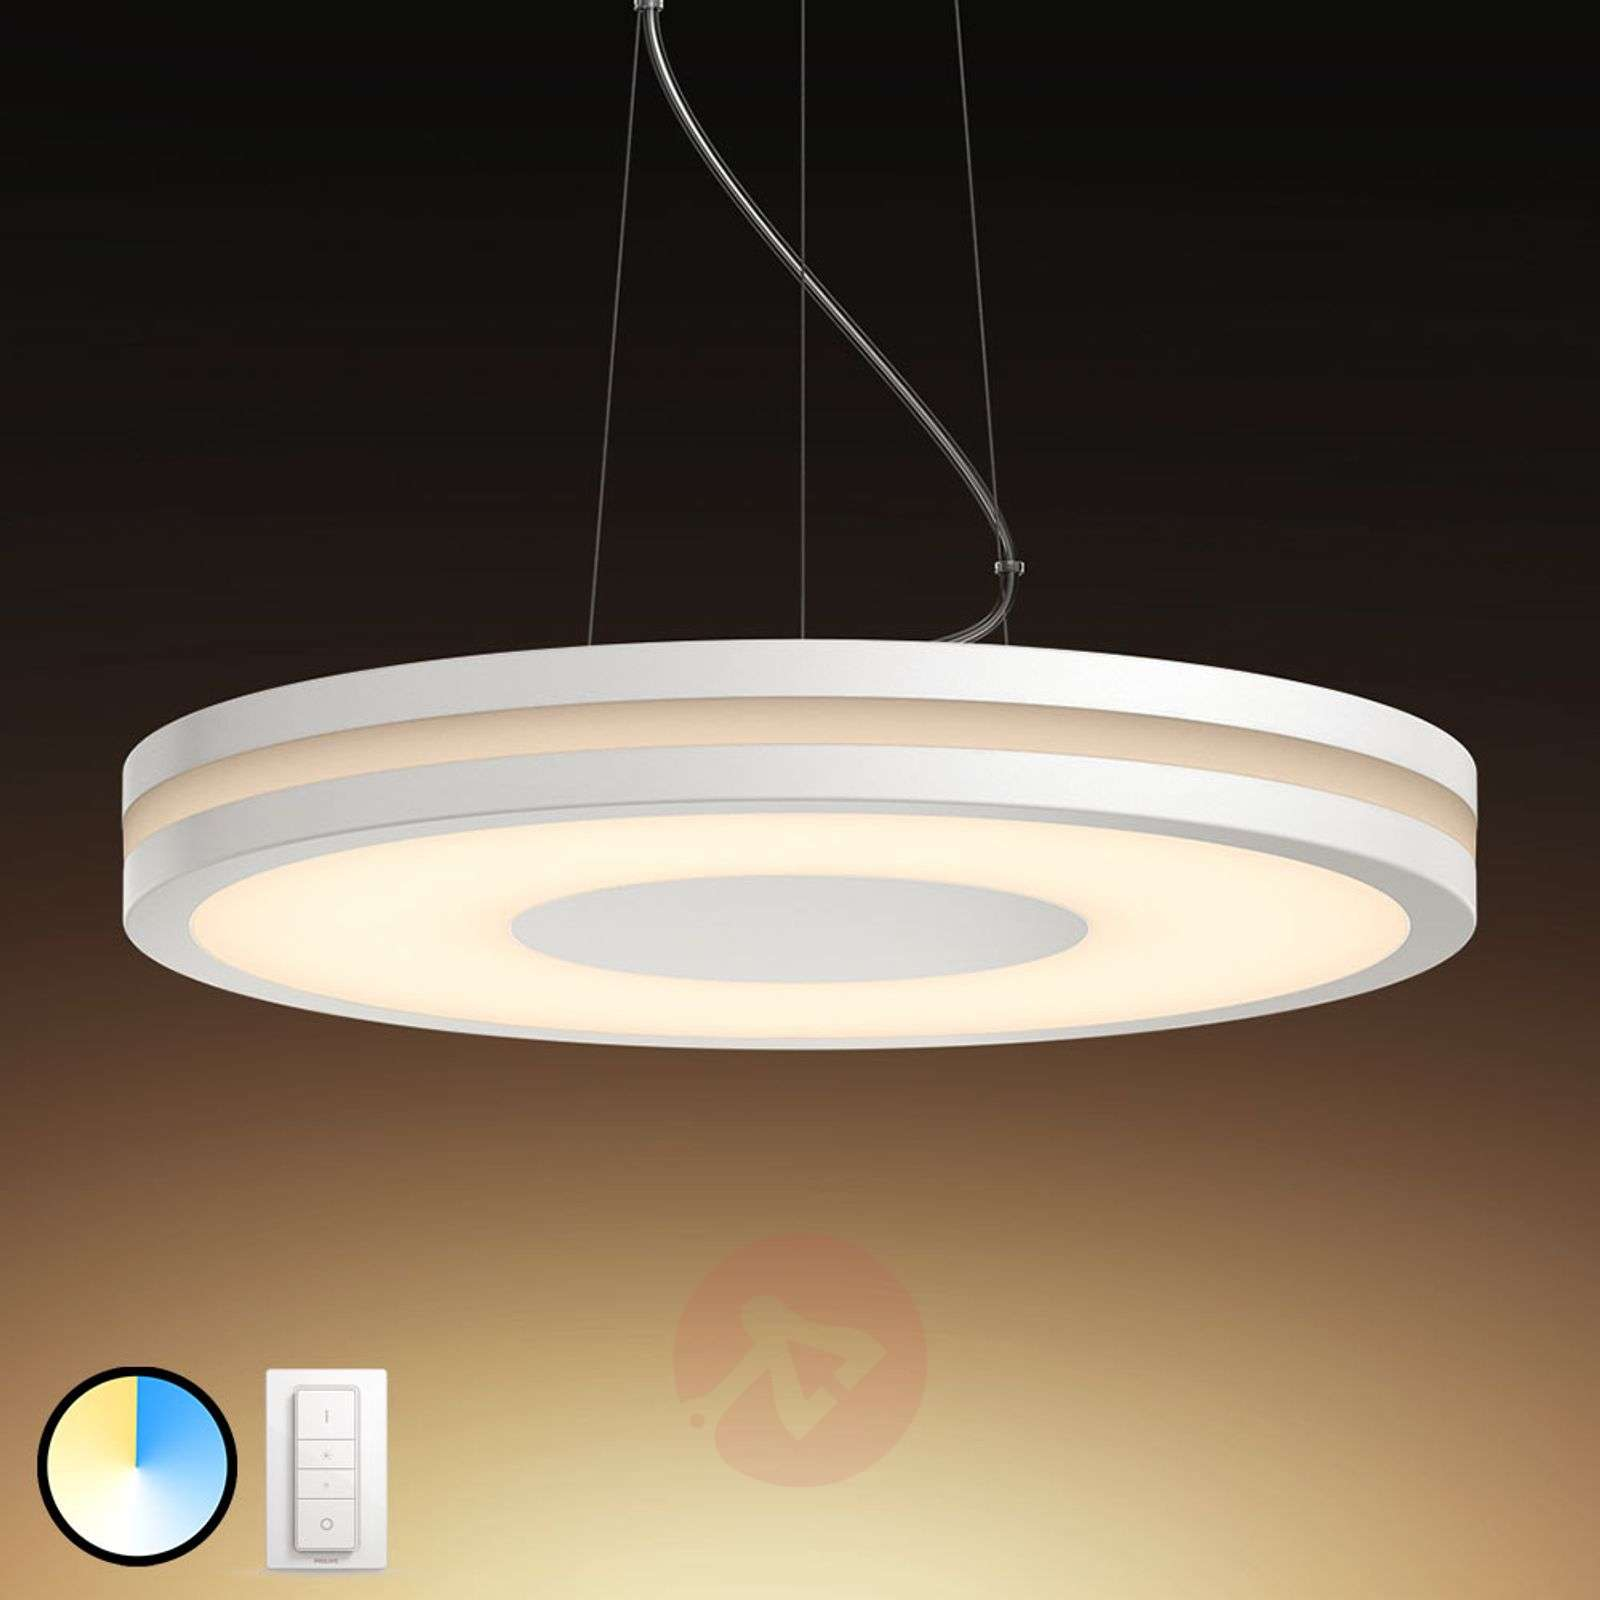 Philips Hue Being lampada a sospensione LED dimmer-7534060X-01